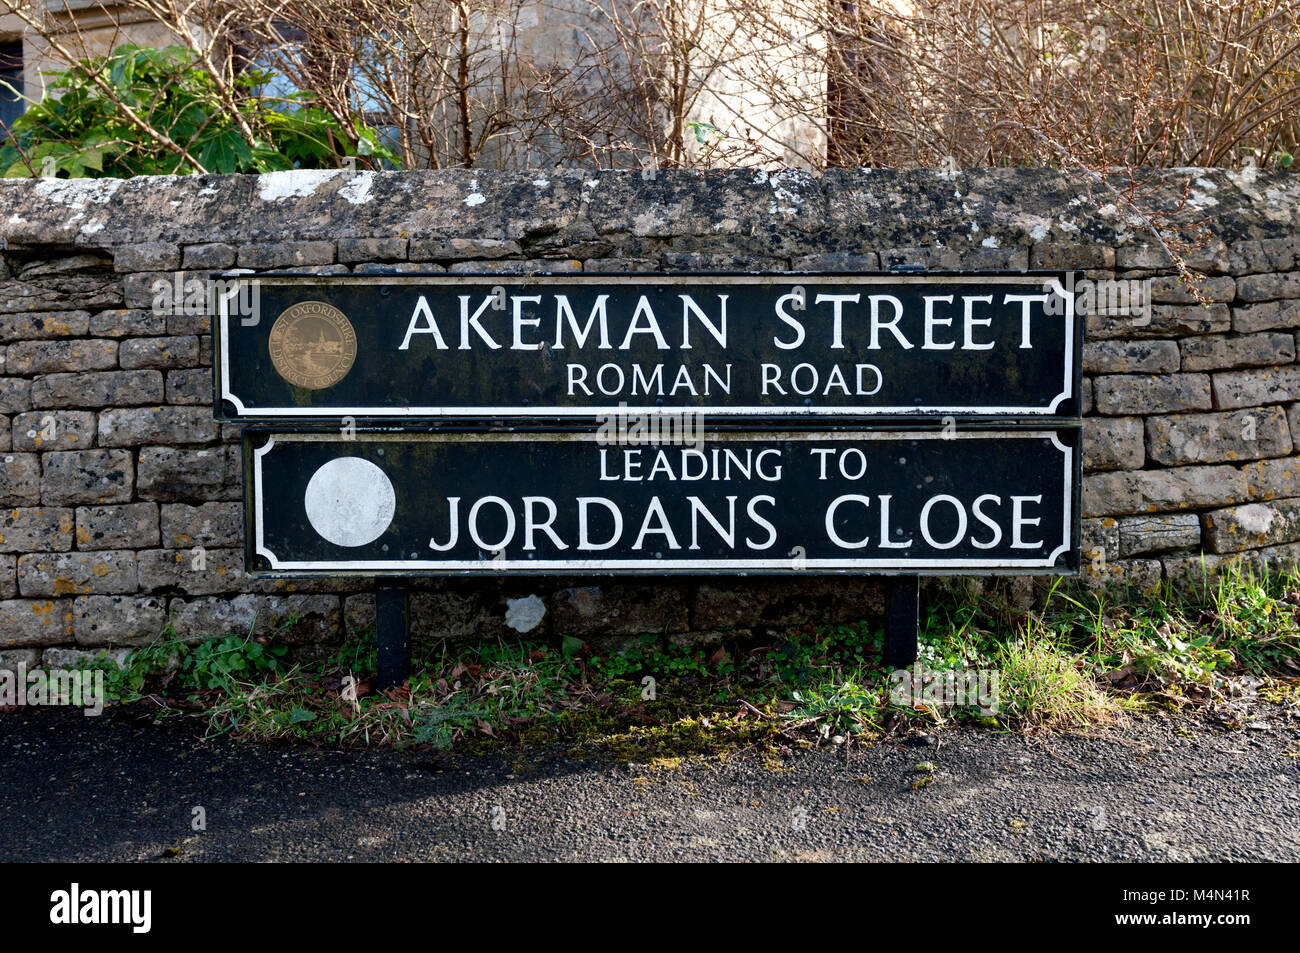 Akeman Street sign, Ramsden, Oxfordshire, England, UK Stock Photo